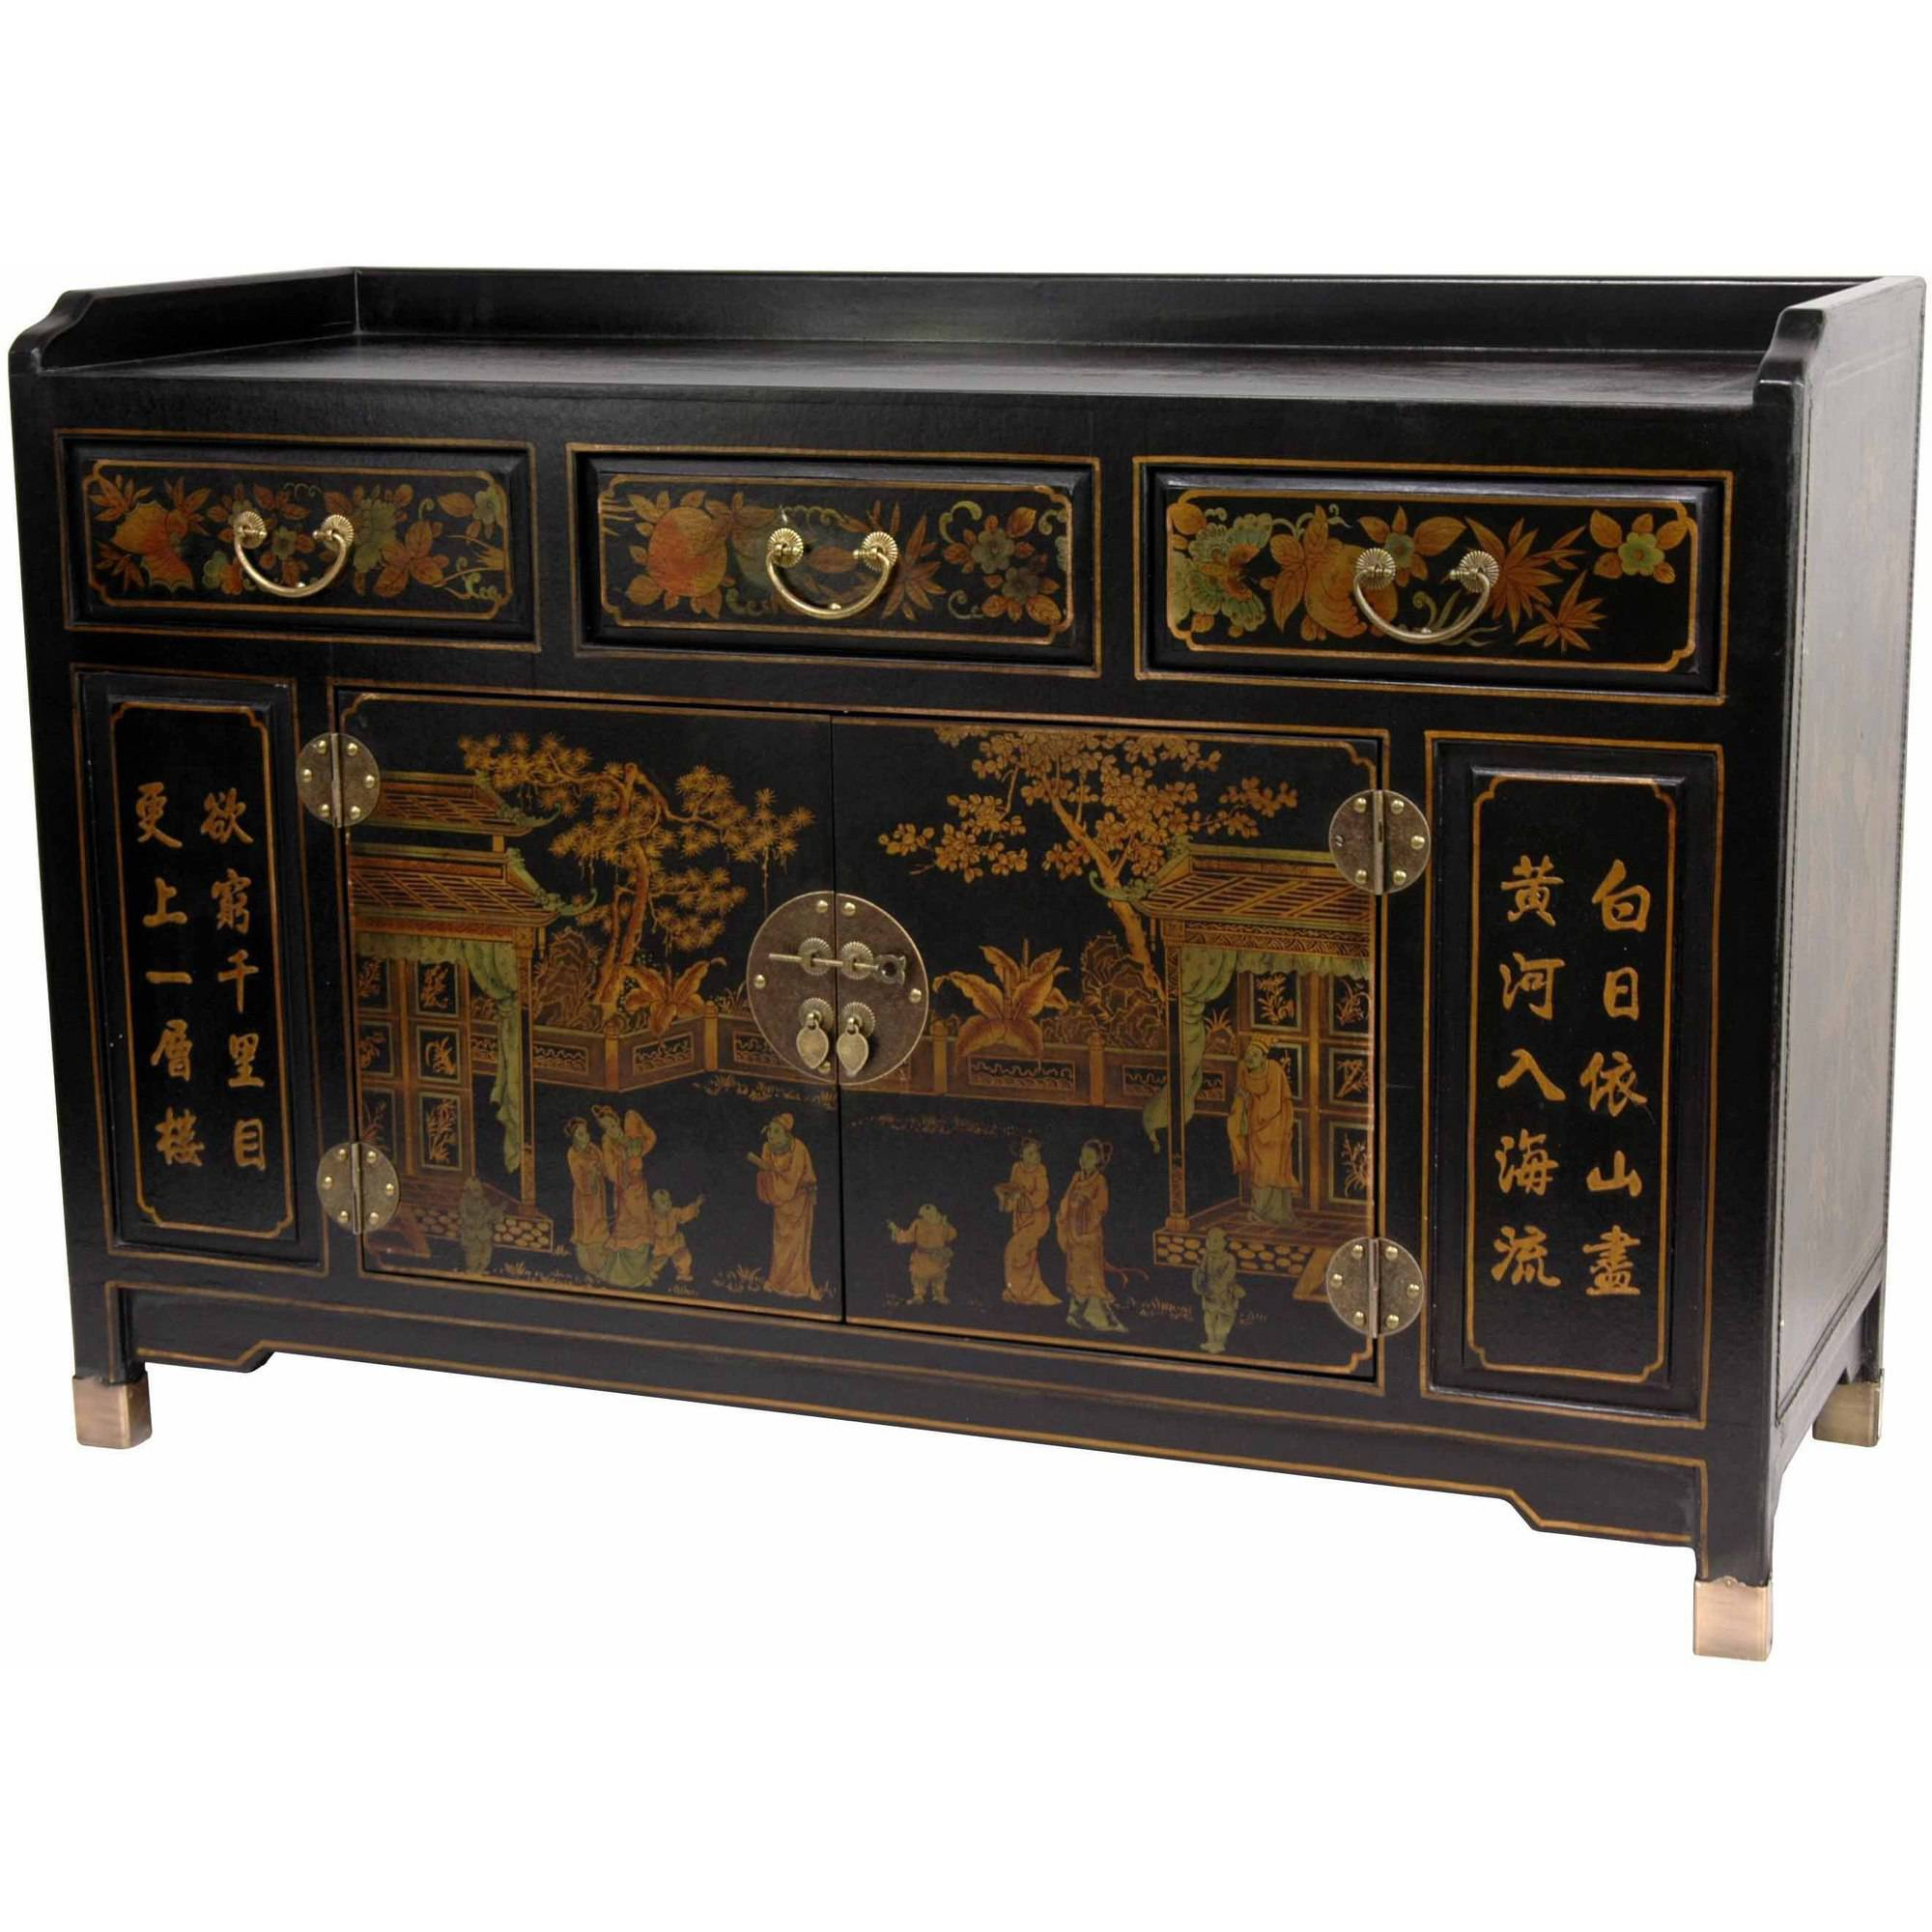 Black Lacquer Village Life Buffet Table by Oriental Furniture